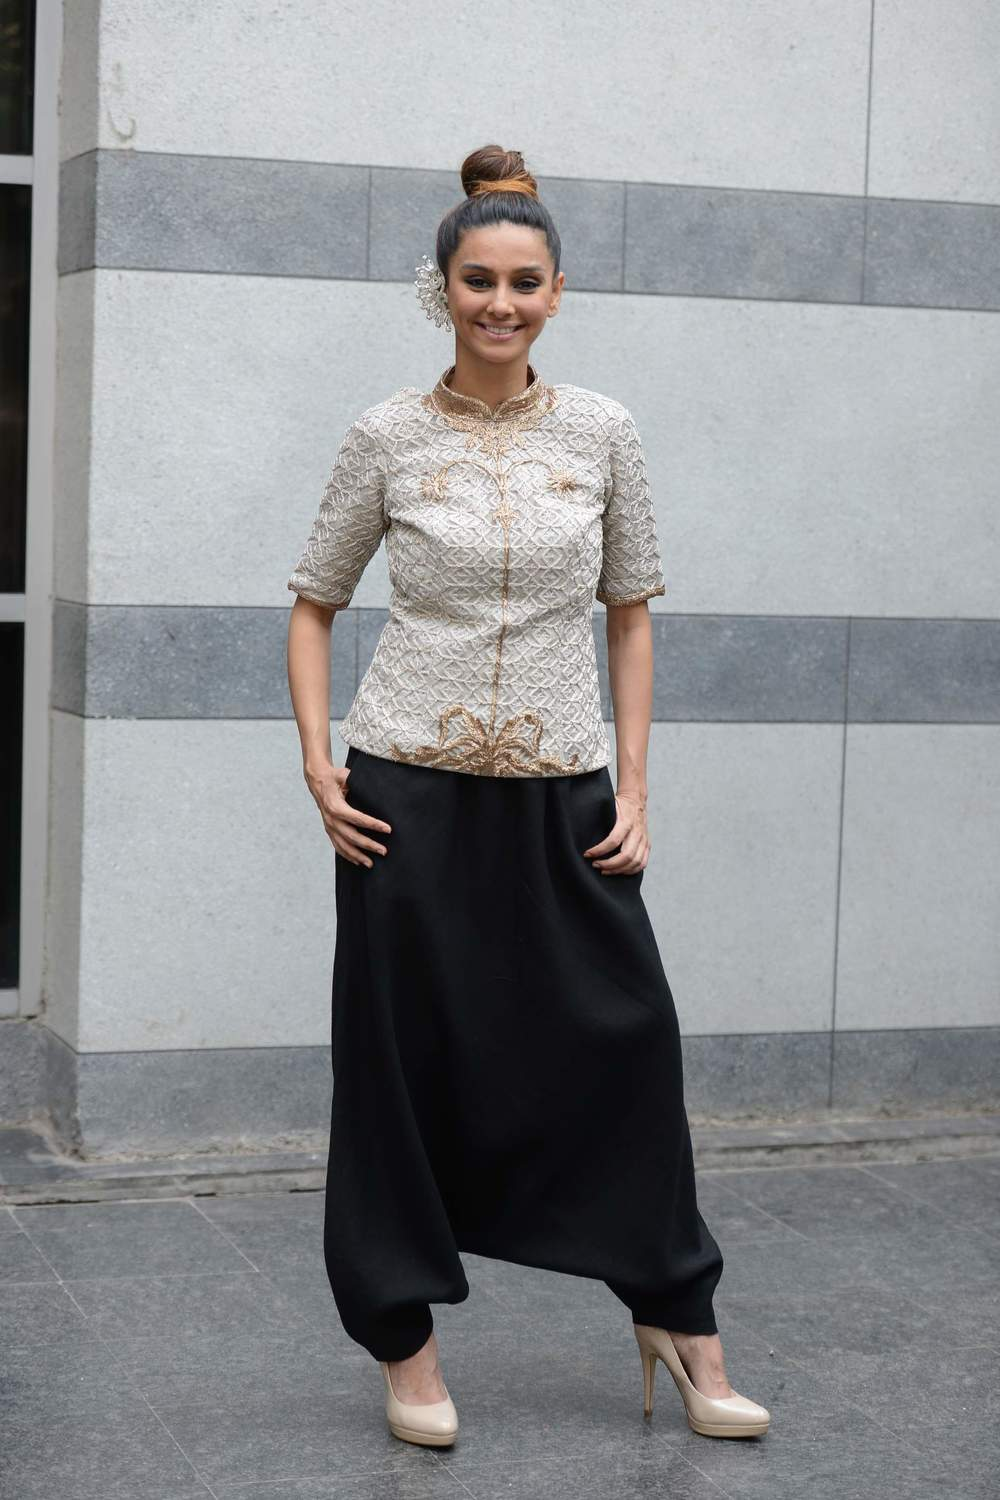 Shibani Dandekar  dressed in Lady Sahara by Payal Singhal